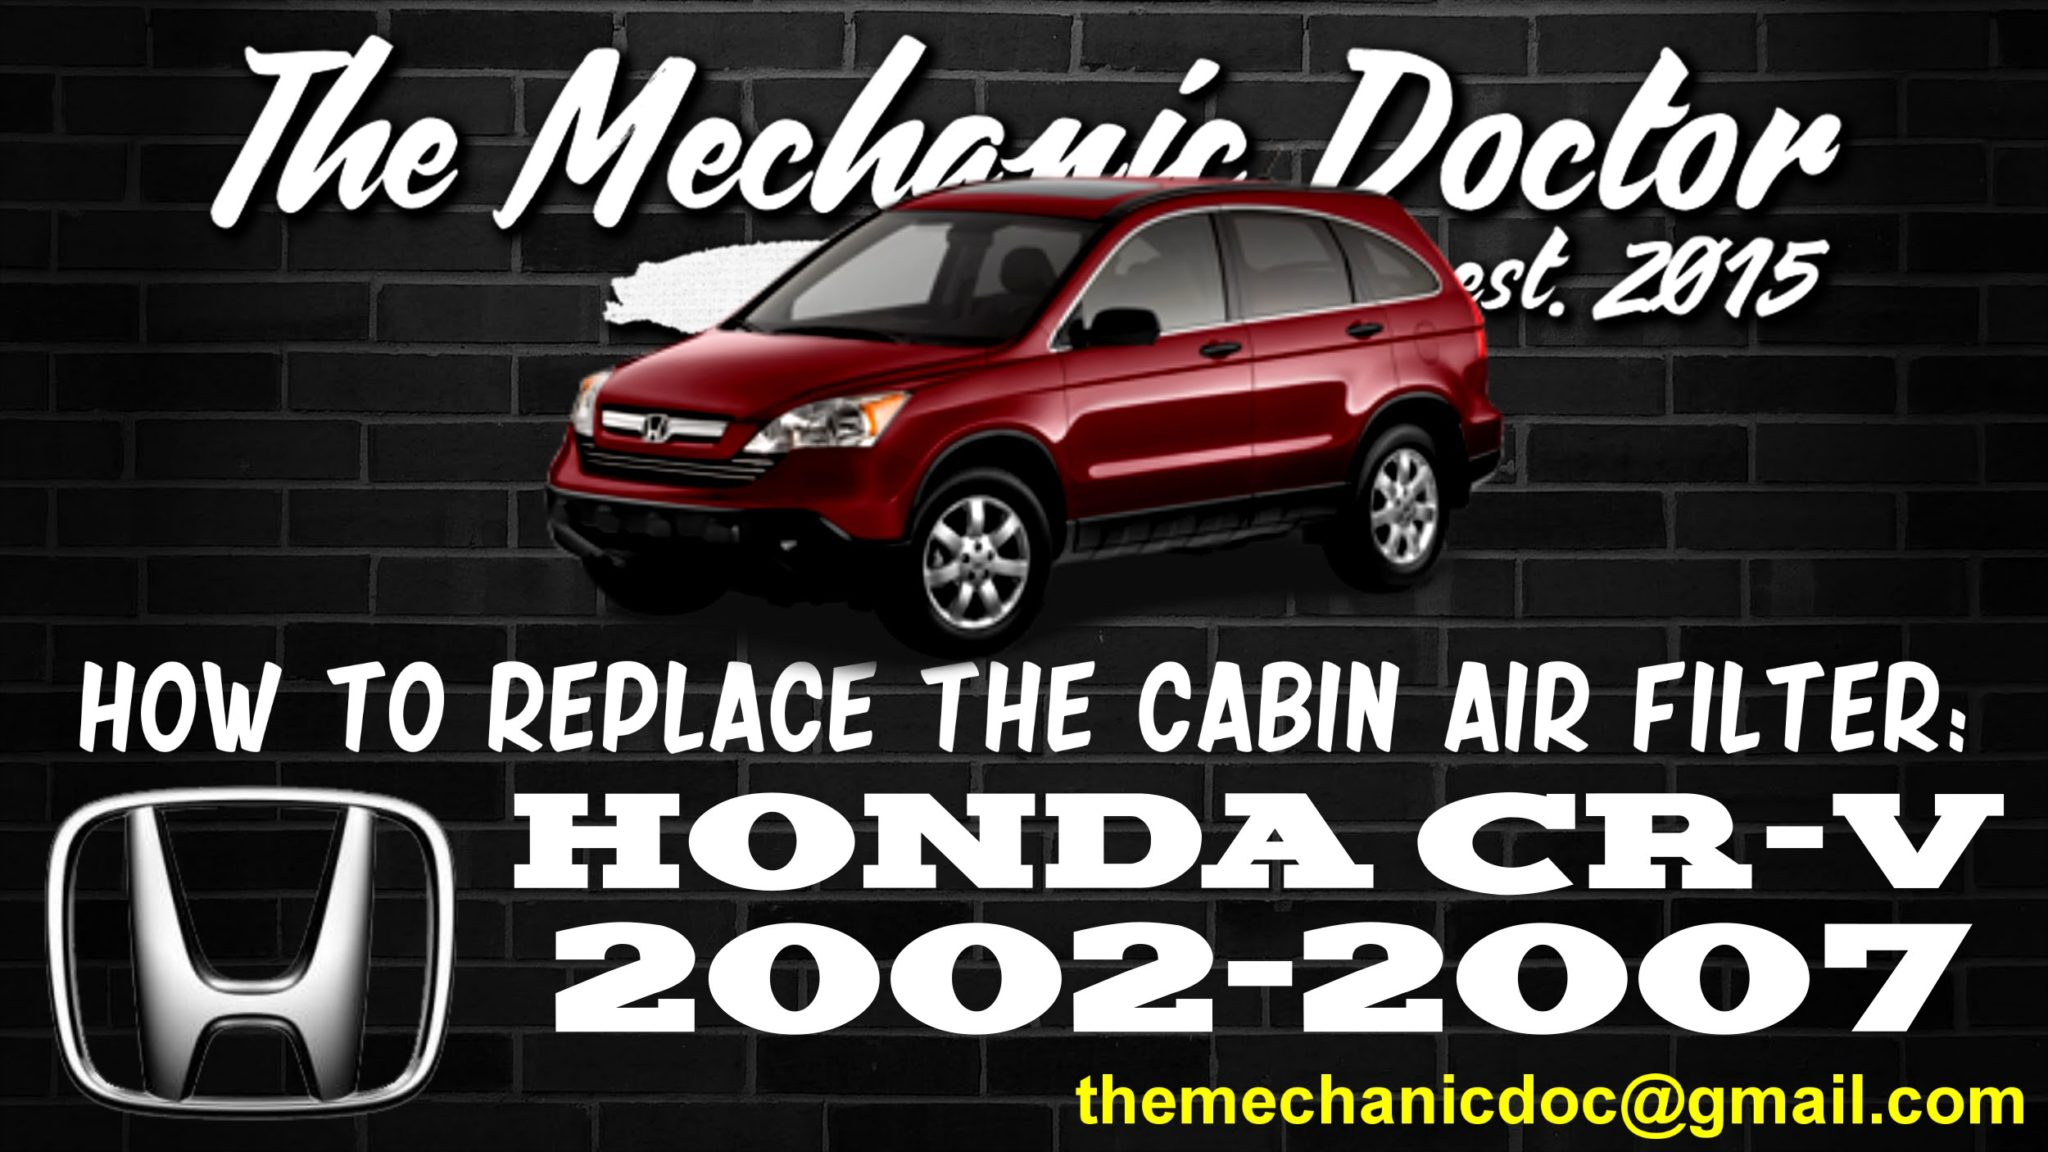 How To Replace The Cabin Air Filter : Honda CR V 2002, 2003, 2004, 2005,  2006, 2007.